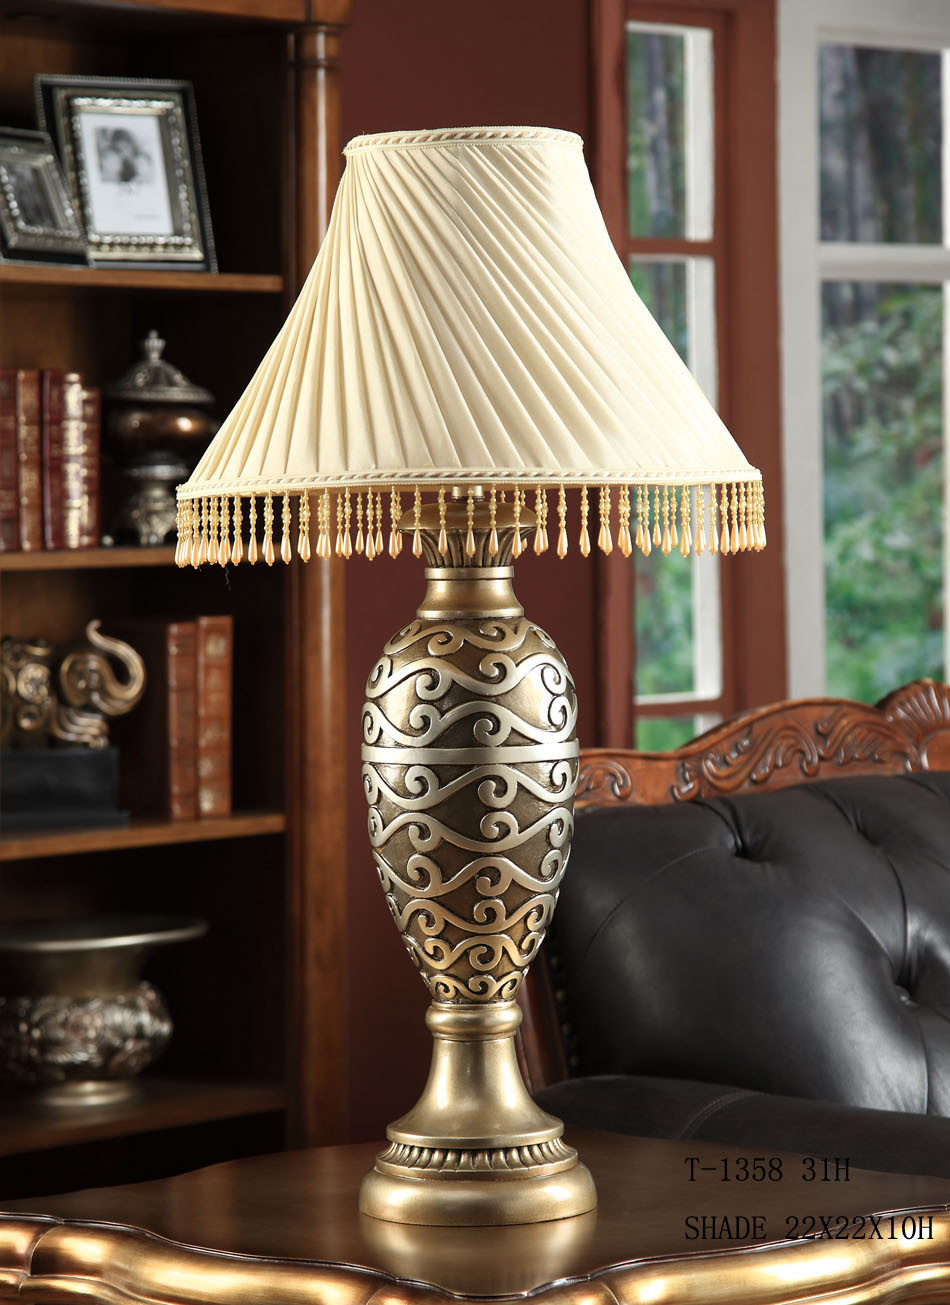 classic table lamp bedside table lamp t 1358. Black Bedroom Furniture Sets. Home Design Ideas